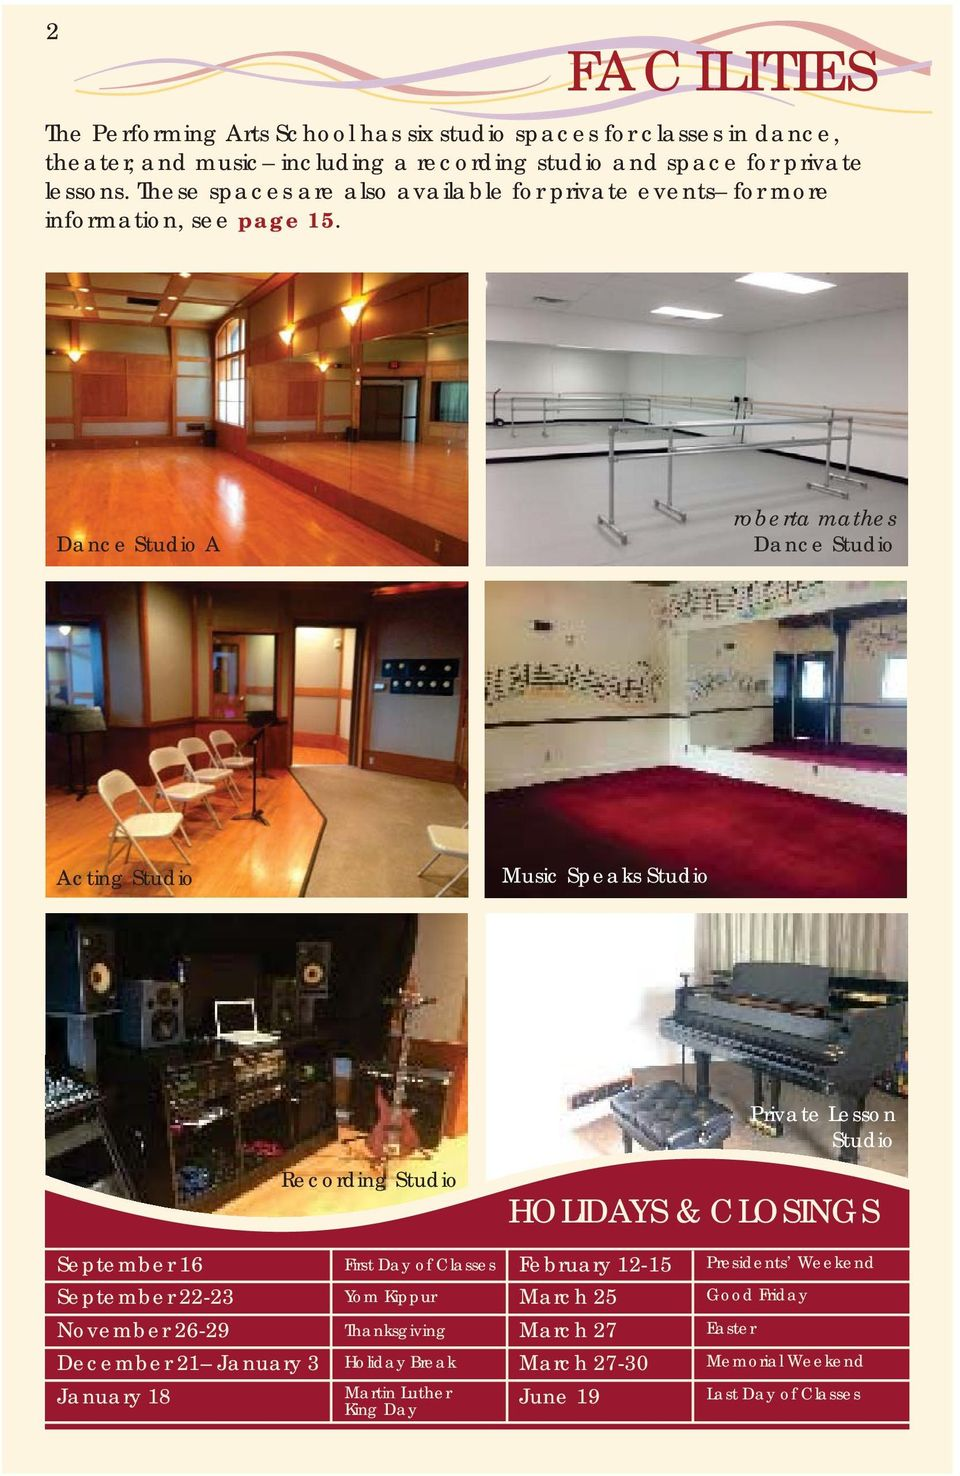 Dance Studio A roberta mathes Dance Studio Acting Studio Music Speaks Studio Private Lesson Studio Recording Studio HOLIDAYS & CLOSINGS September 16 First Day of